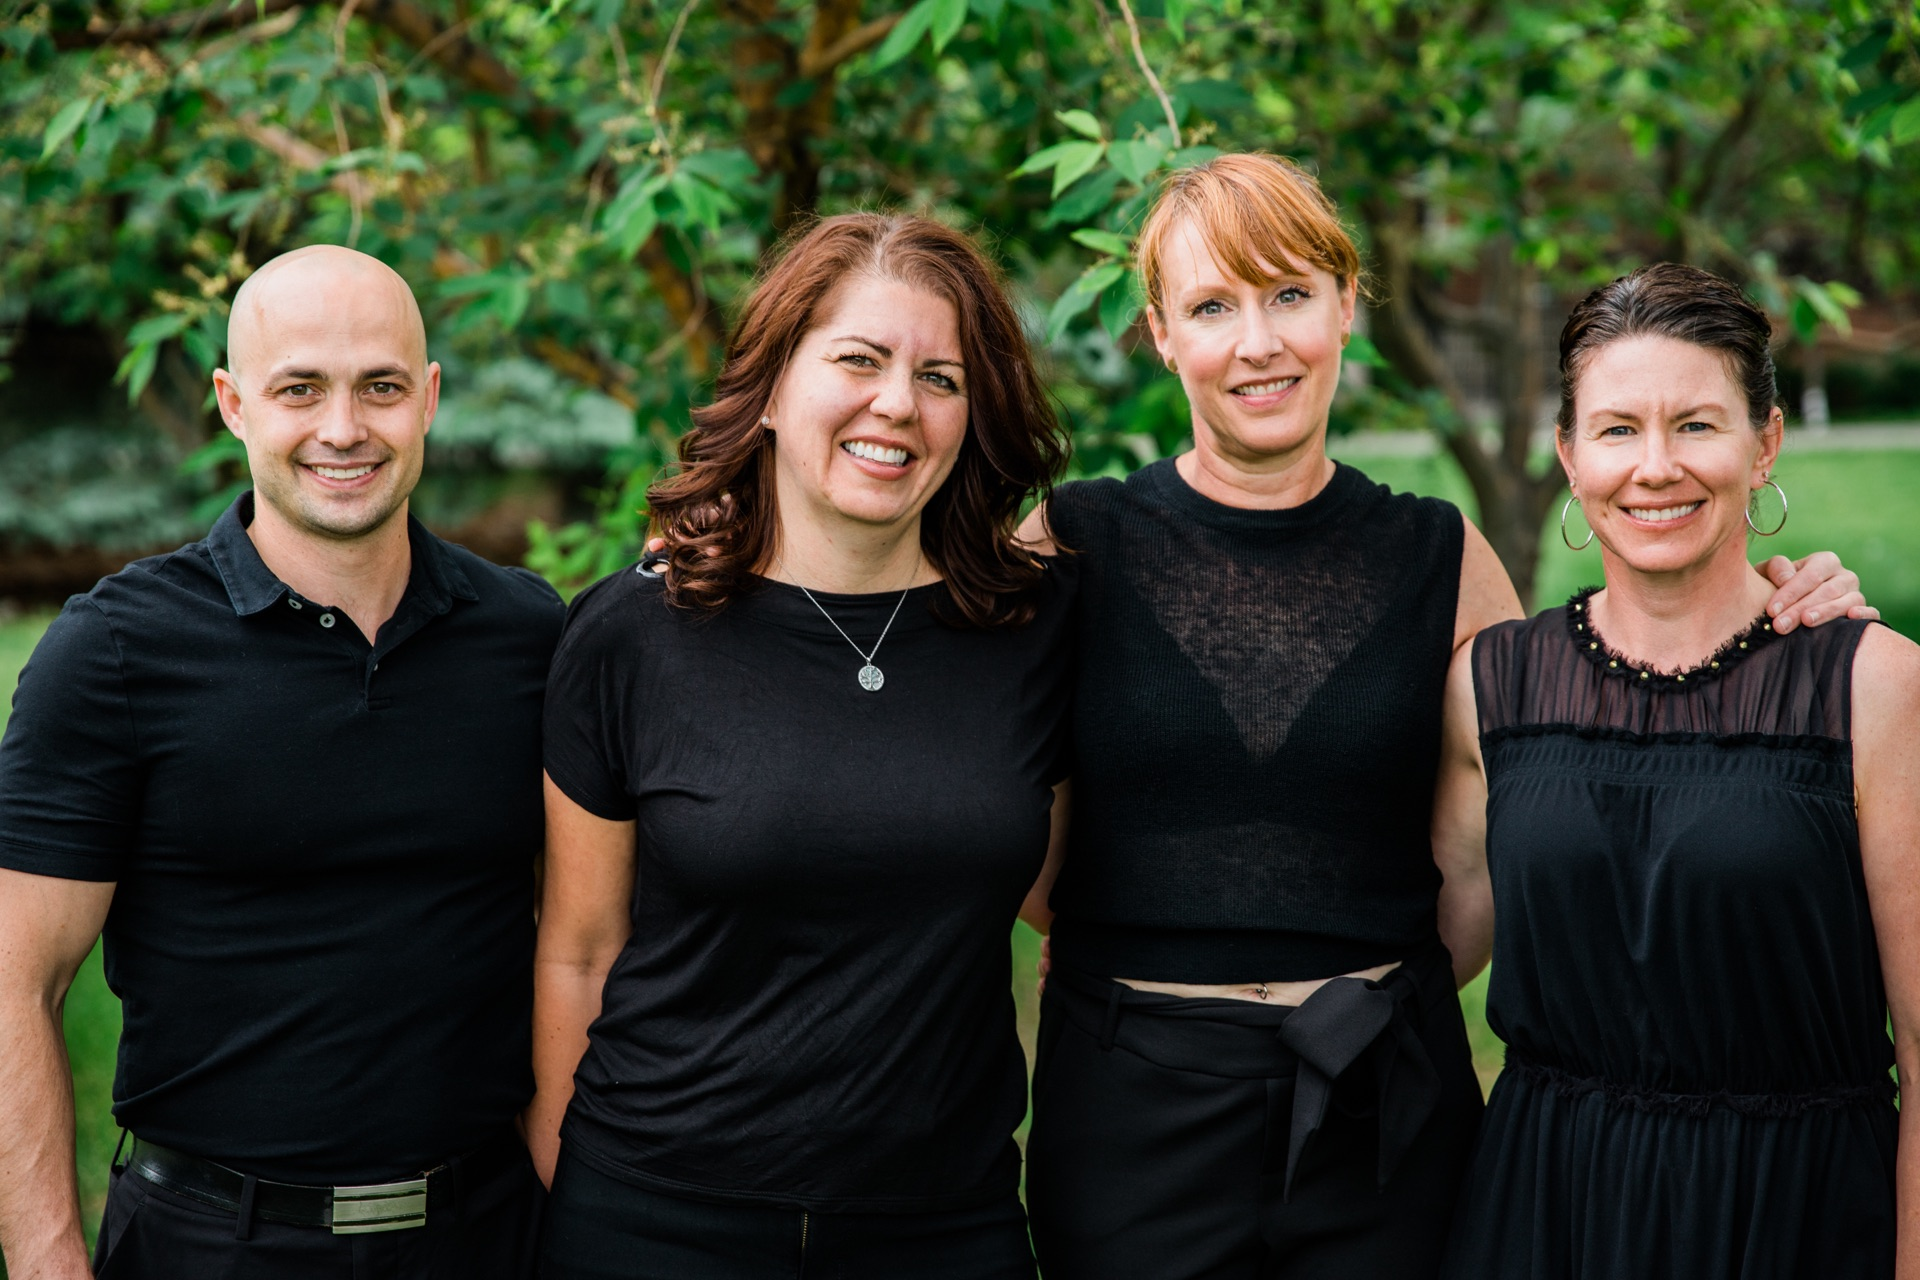 Jennifer, Christine, and Laura each bring over 20 years of experience | Dentist Downtown Calgary | Eau Claire Park Dental